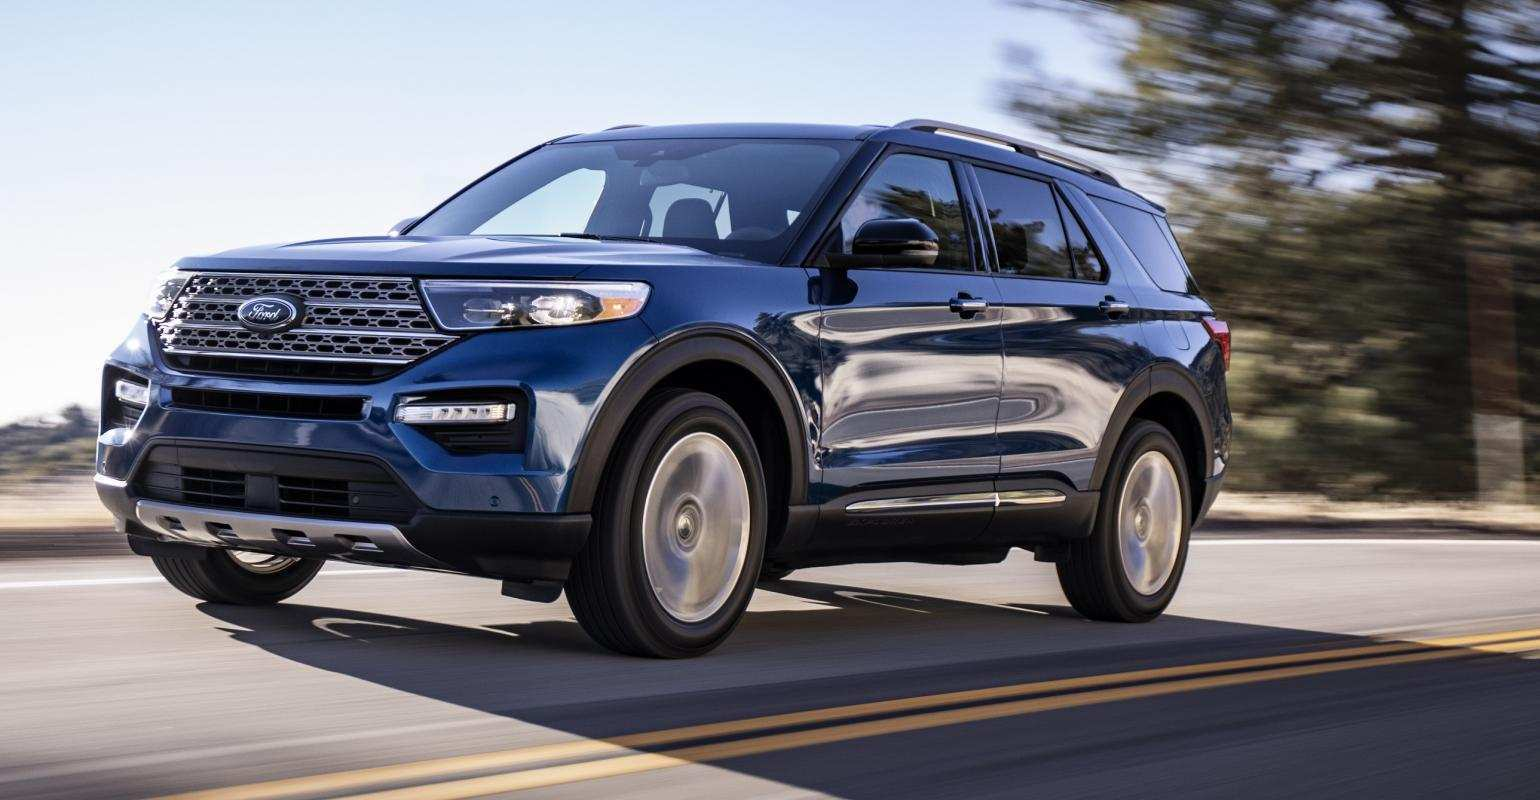 62 All New 2020 The Ford Explorer Reviews